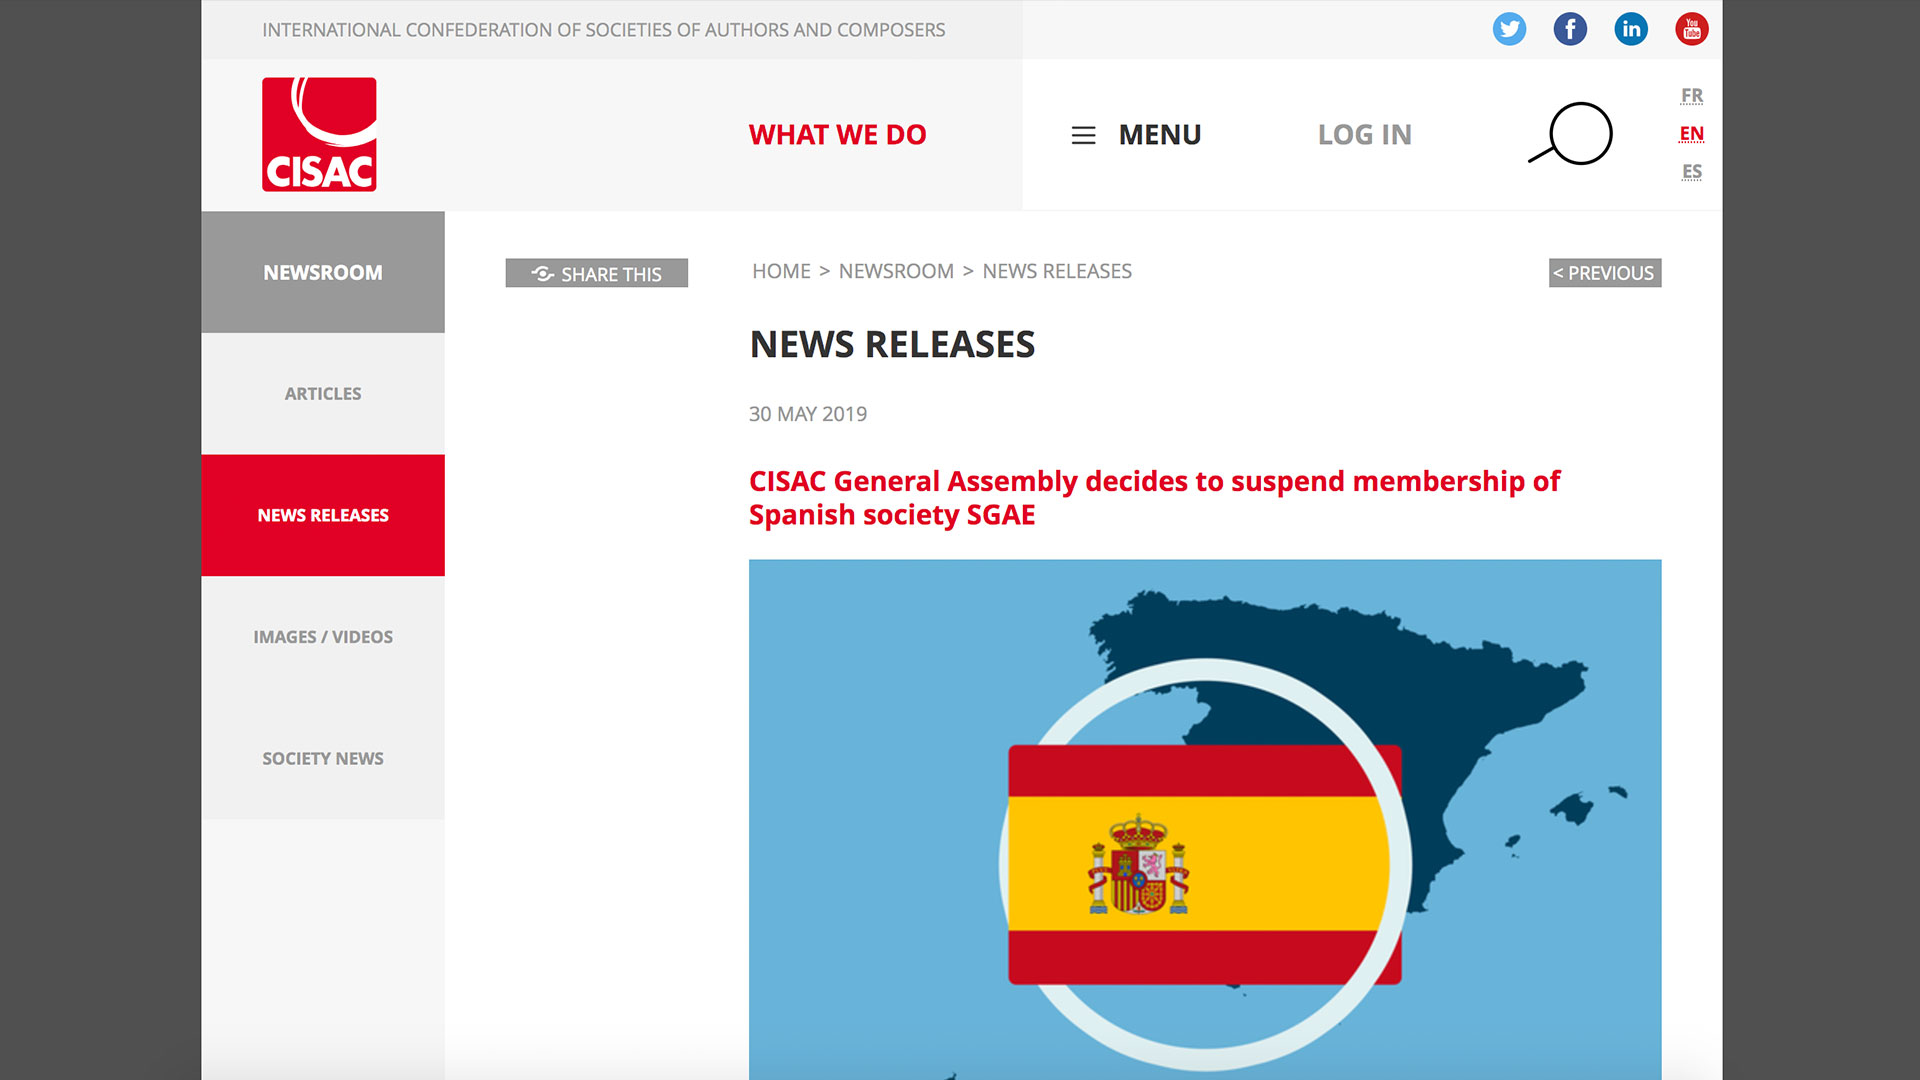 Fairness Rocks News CISAC General Assembly decides to suspend membership of Spanish society SGAE